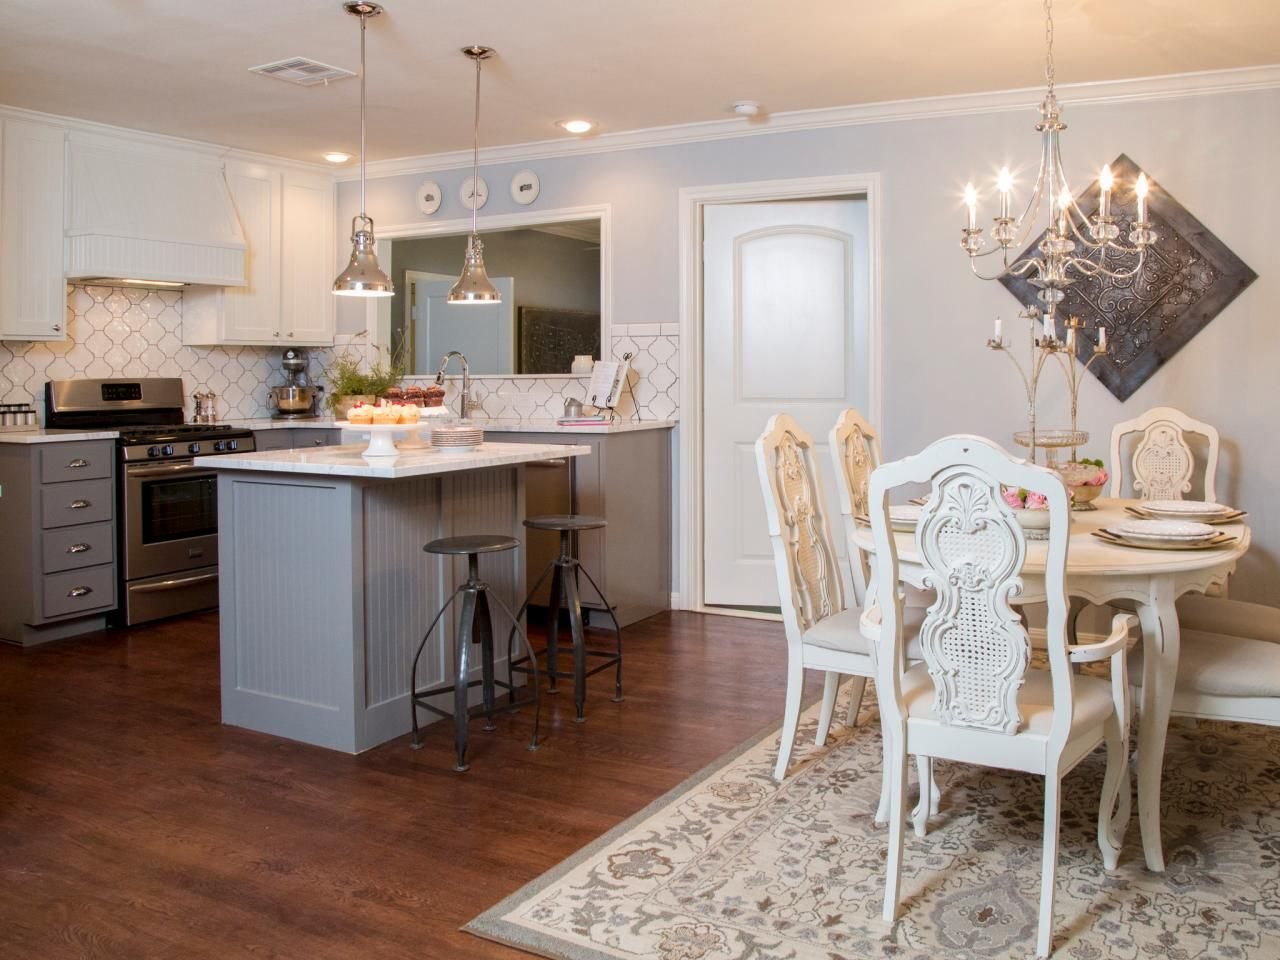 Now The Kitchen And Dining Room Blend Seamlessly Clunky Peninsula Has Been Replaced With An Efficient Island That Doubles As A Breakfast Bar